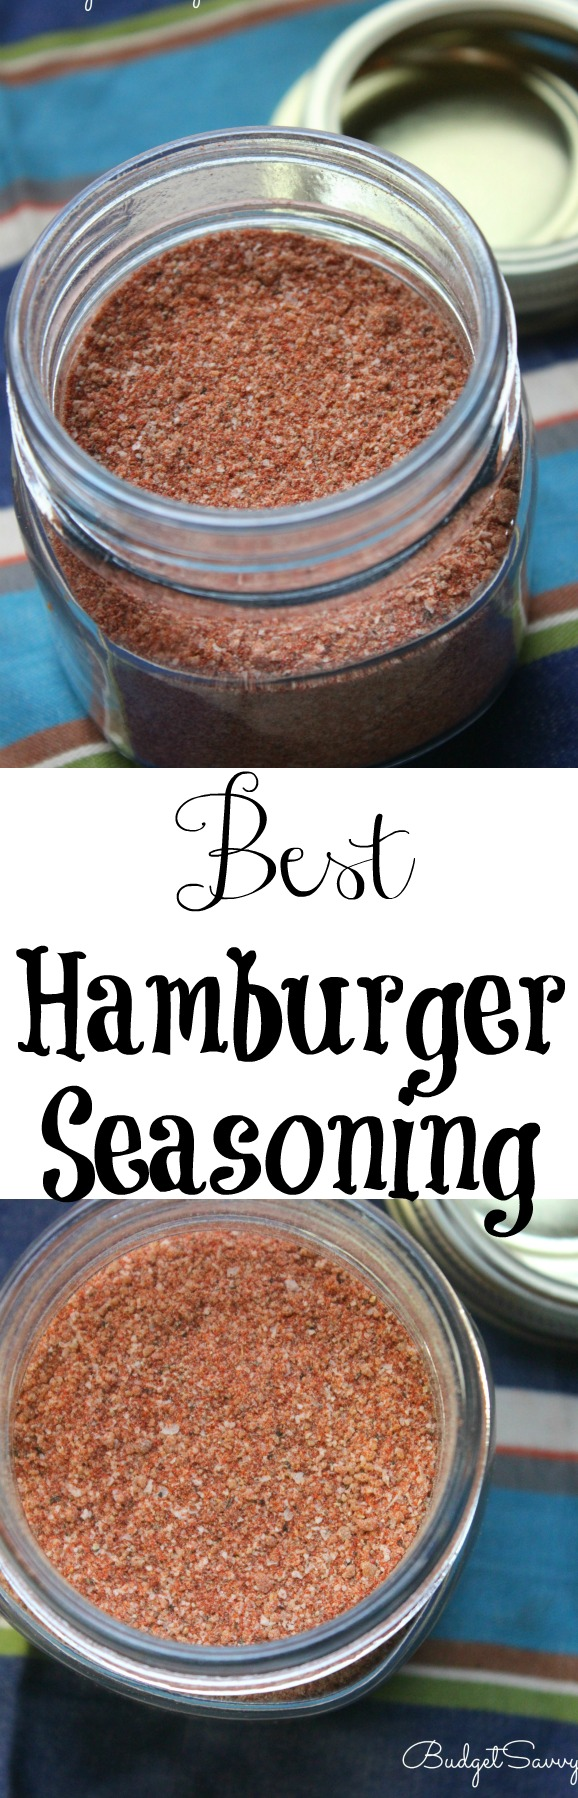 Best Hamburger Seasoning